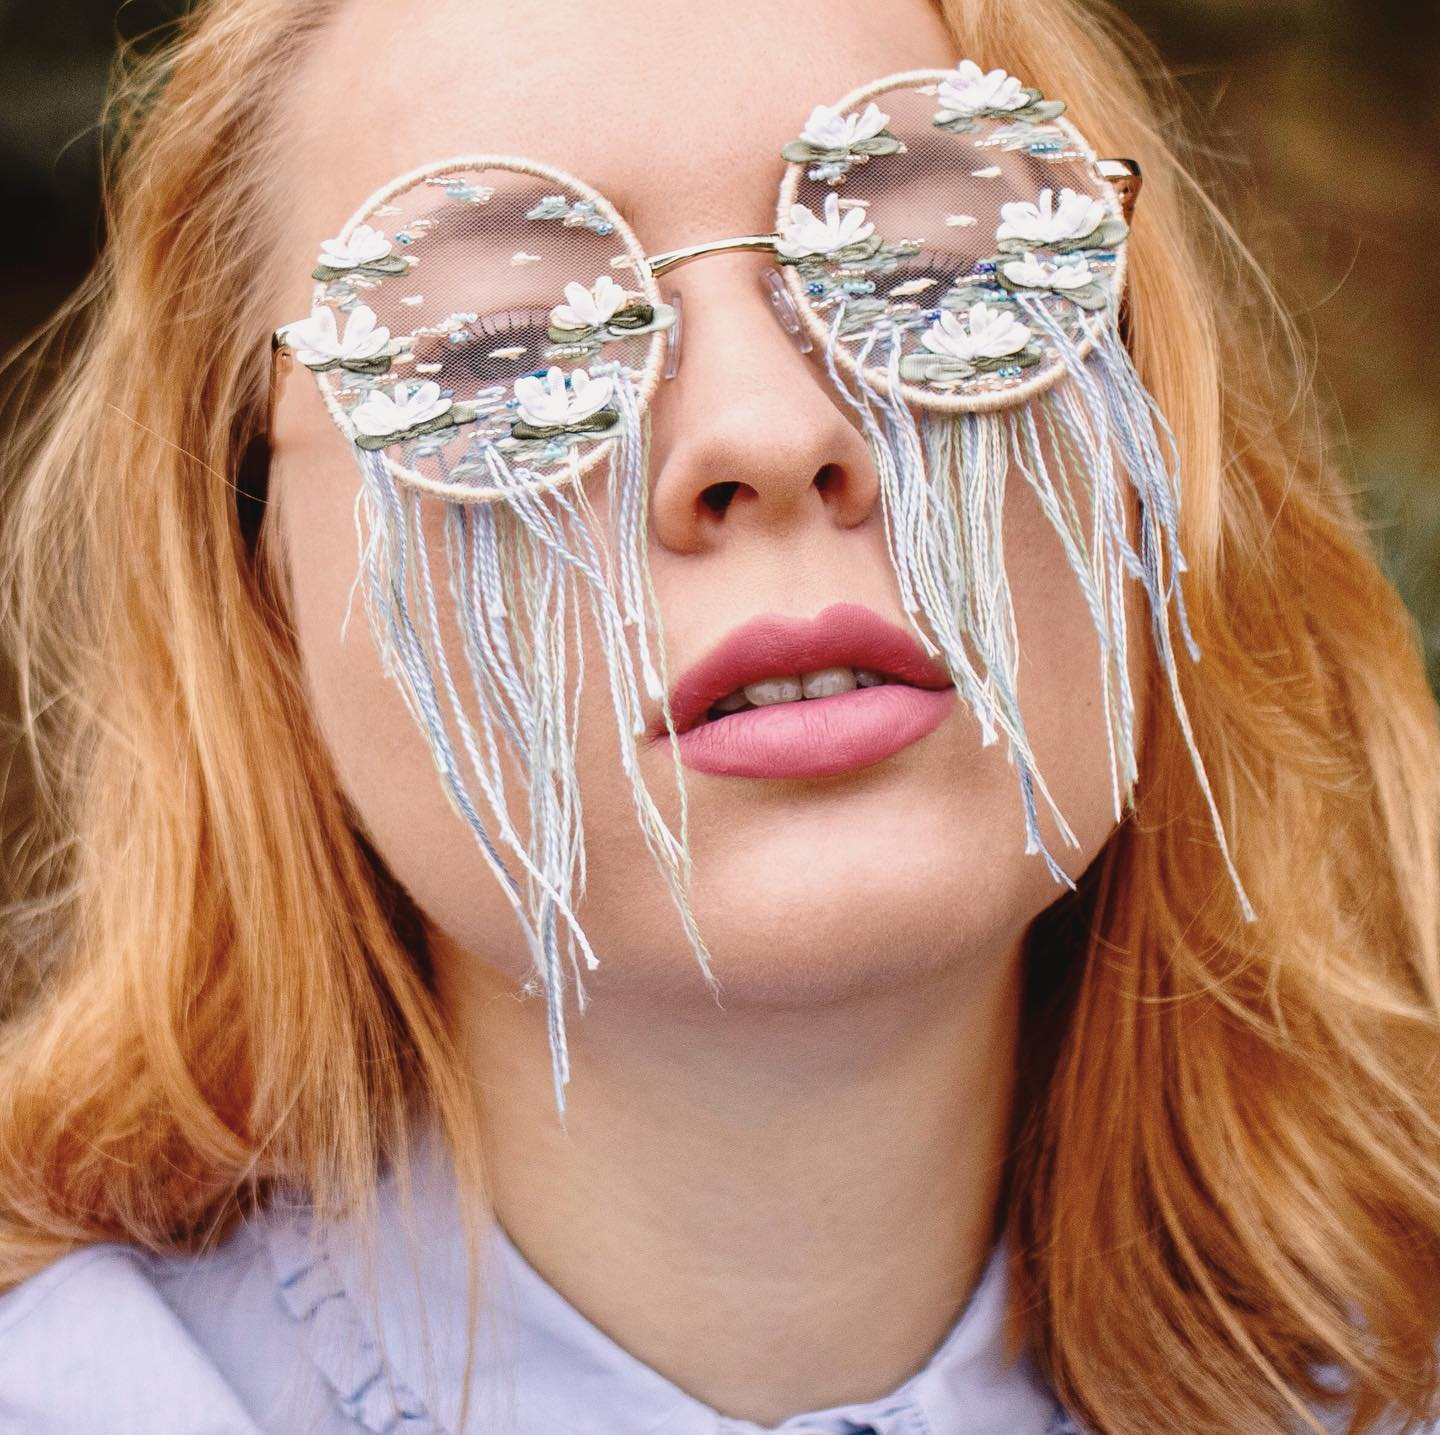 Take a Peek At How Amazing These Embroidered Glasses Are